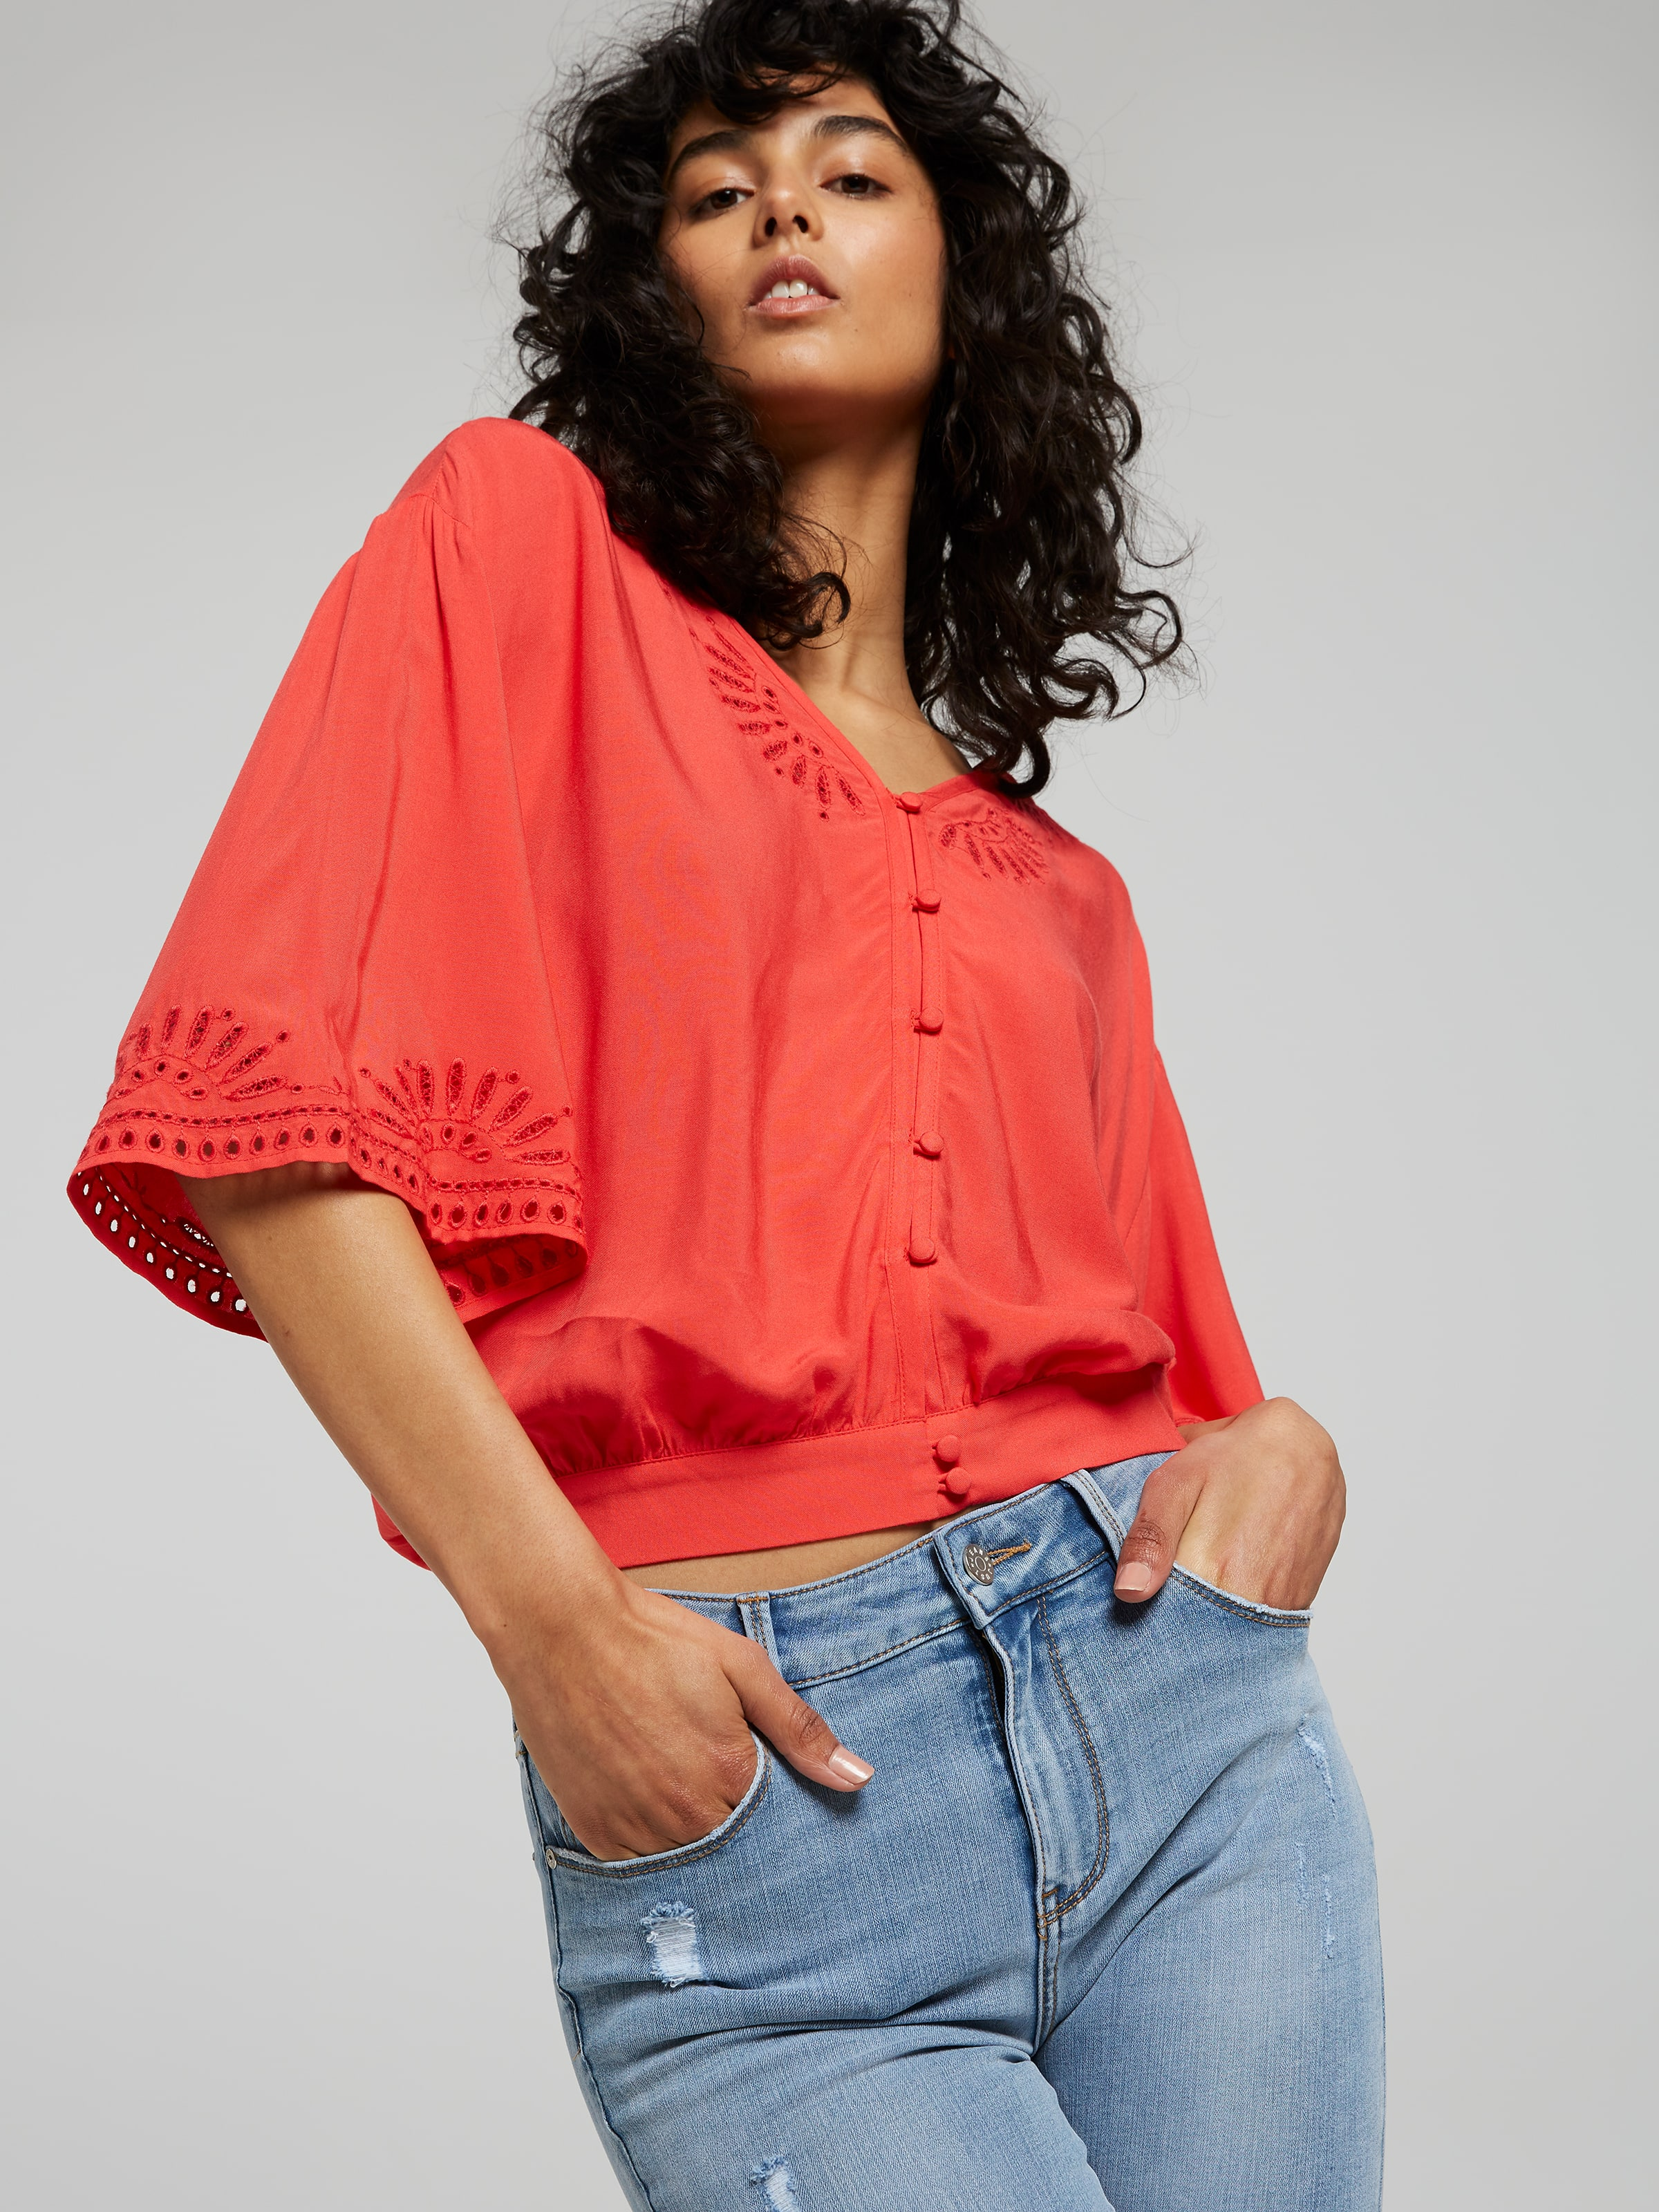 Just Jeans Emily Embroidered Top 10010169